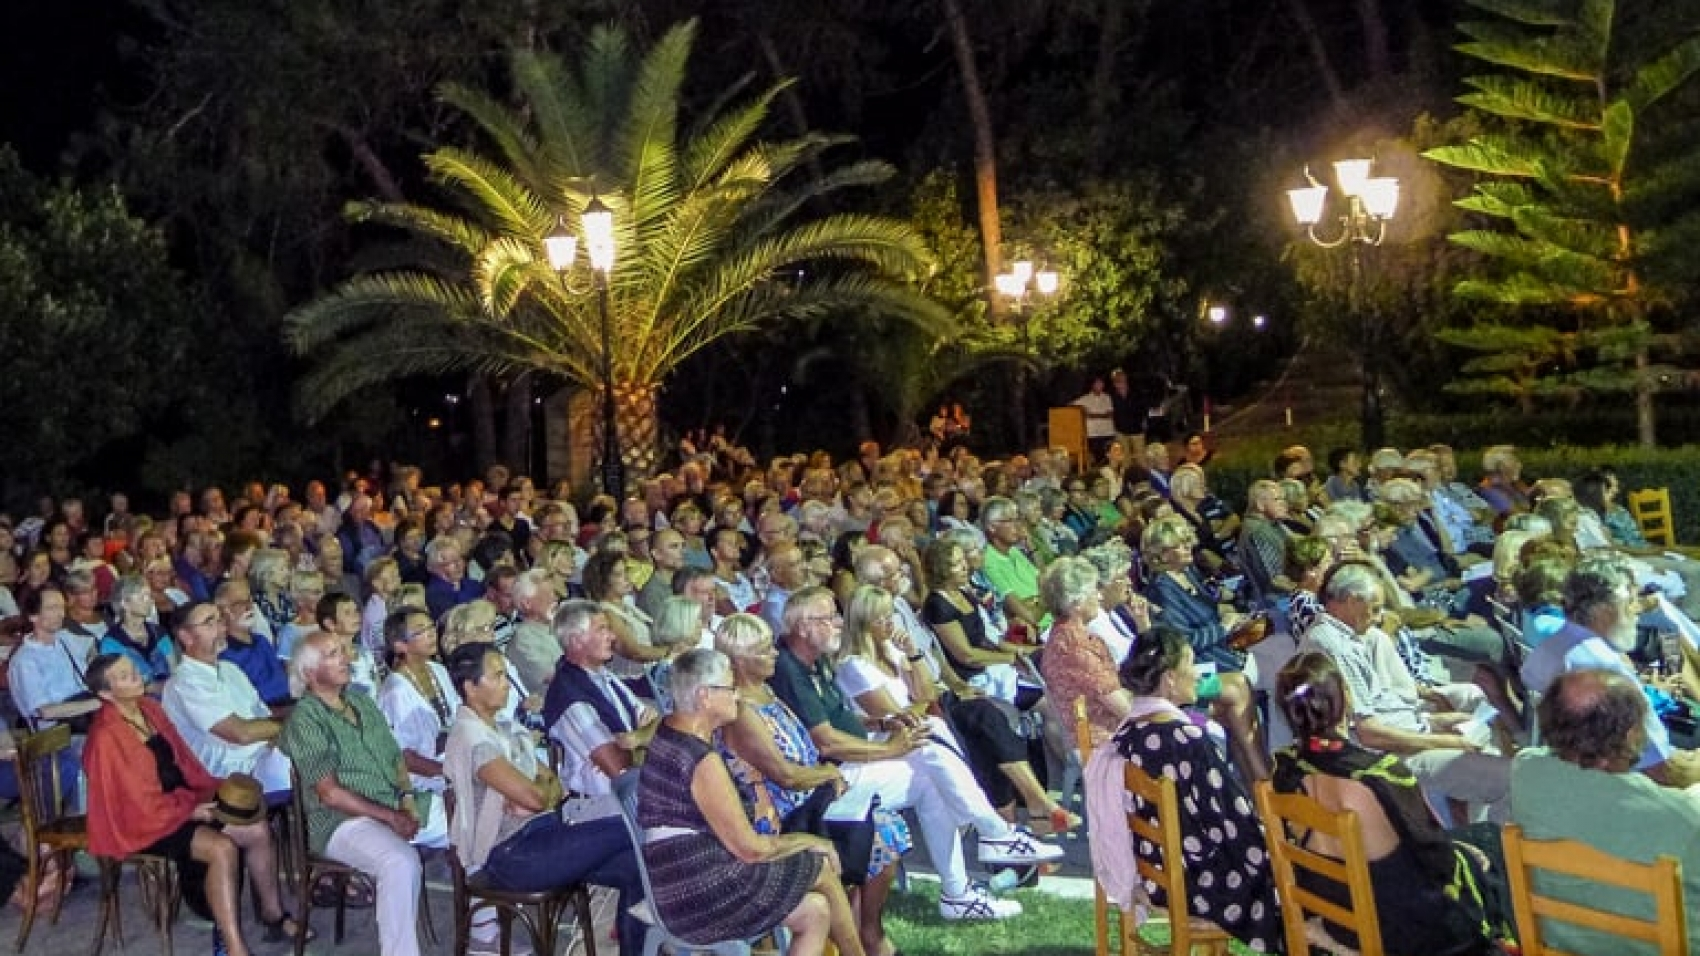 Concert Audience Is Listening - Koroni Event